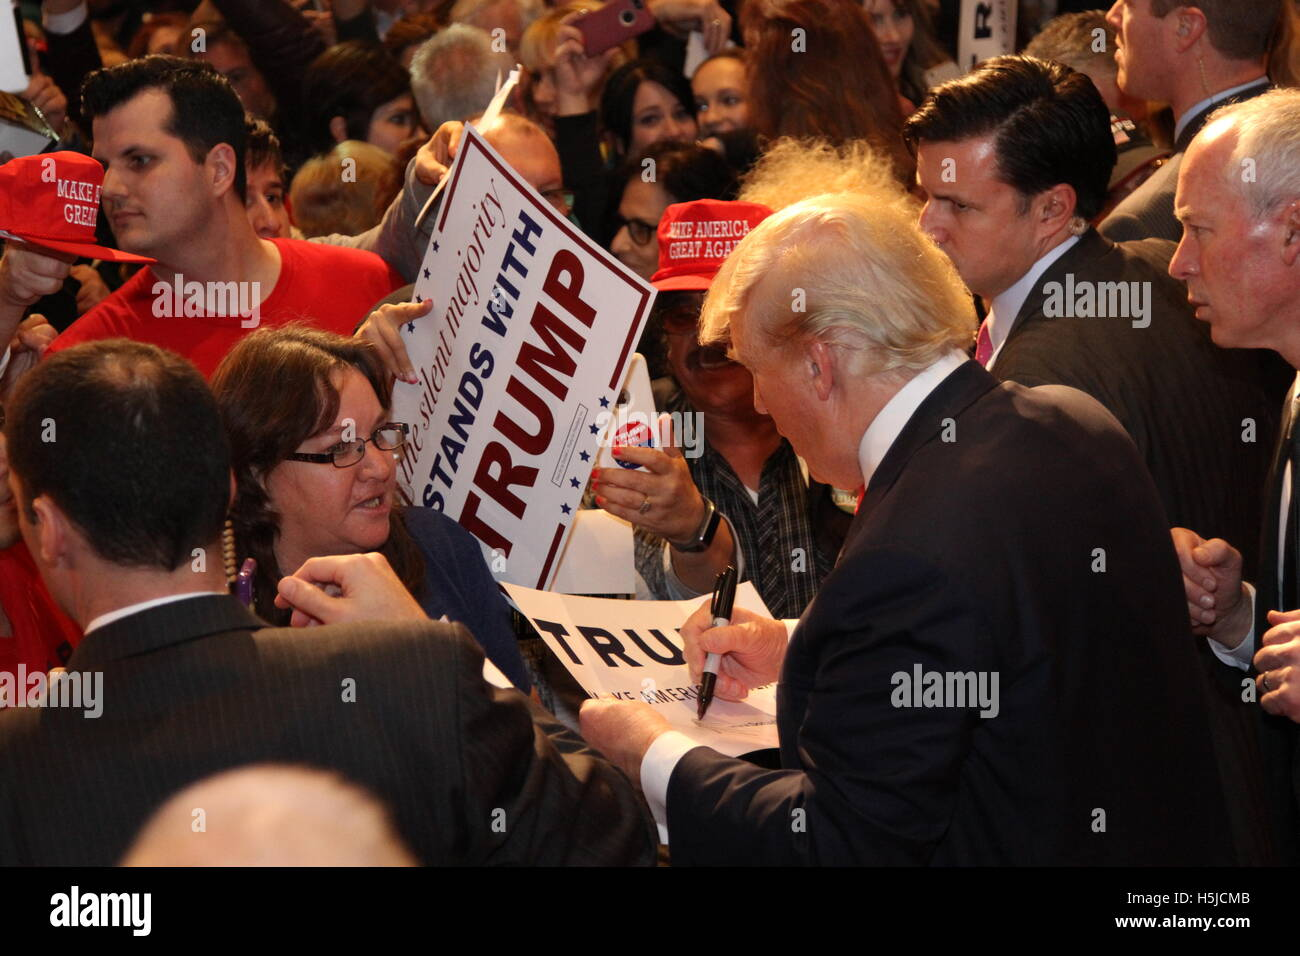 Donald J Trump signing autographs for his supporters at his Donald J Trump for President rally at the South Point - Stock Image